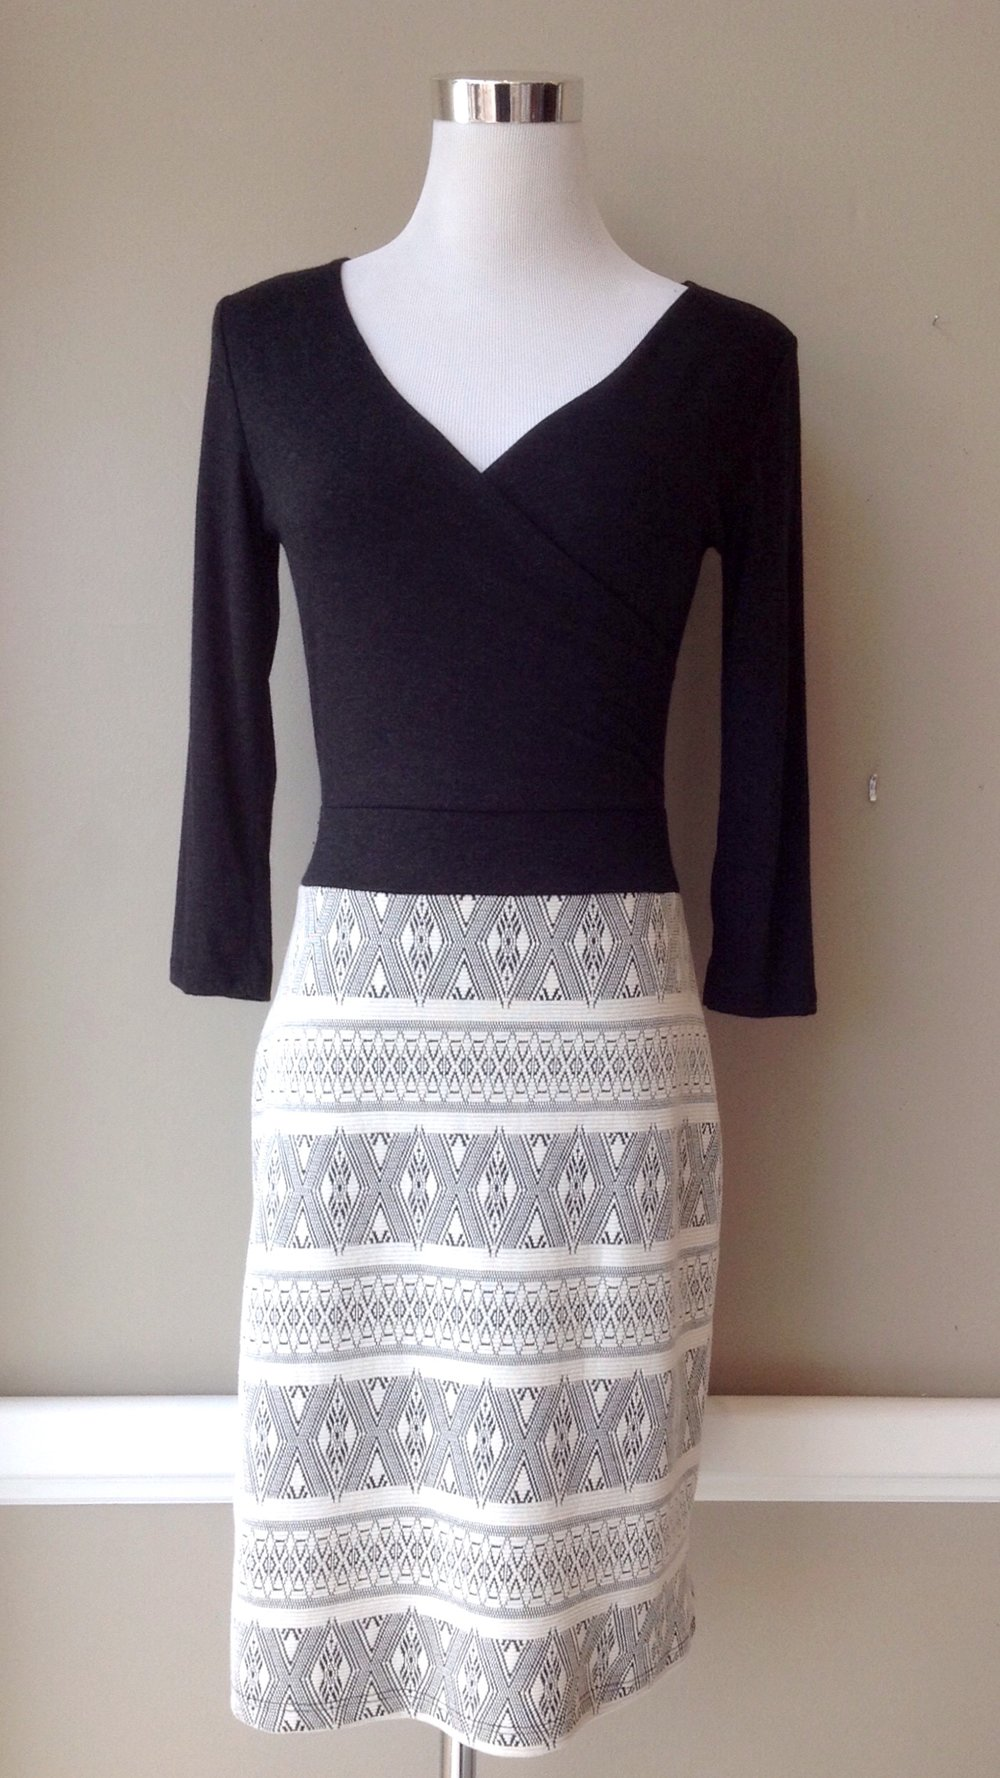 Wrap style dress with contrasting knit skirt and 3/4 sleeves, $45